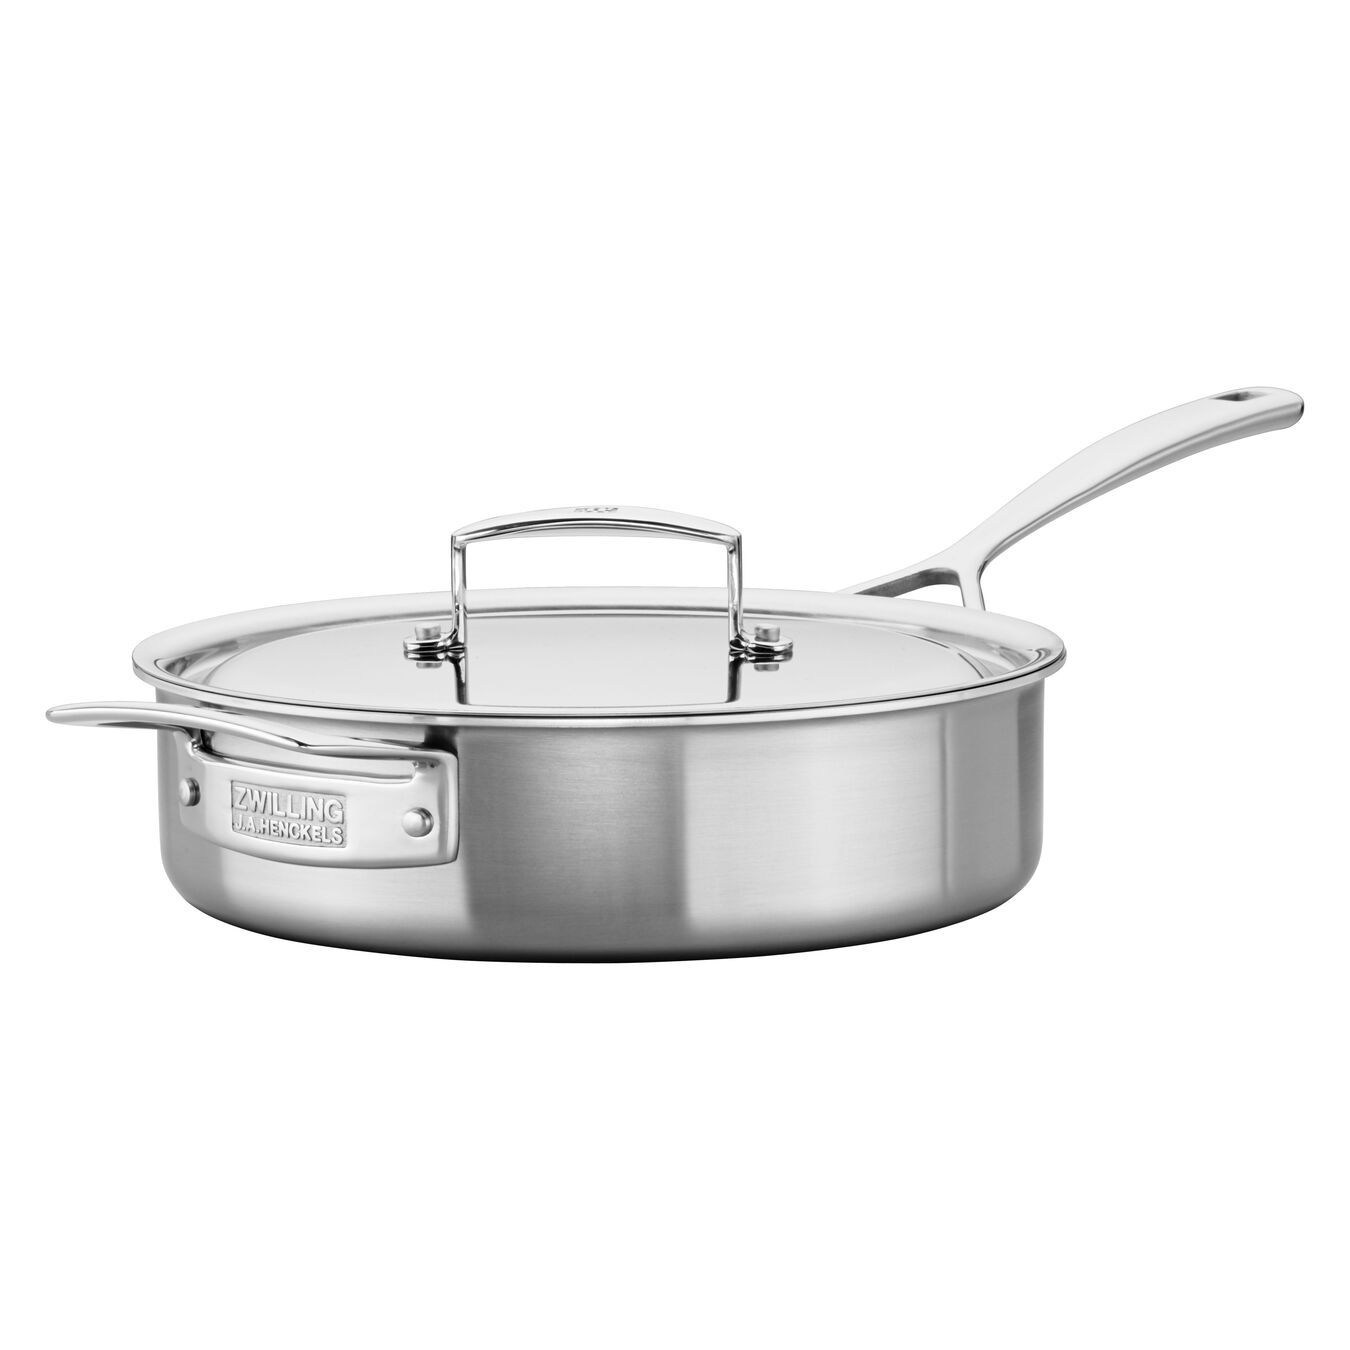 24 cm 18/10 Stainless Steel Saute pan with lid,,large 3